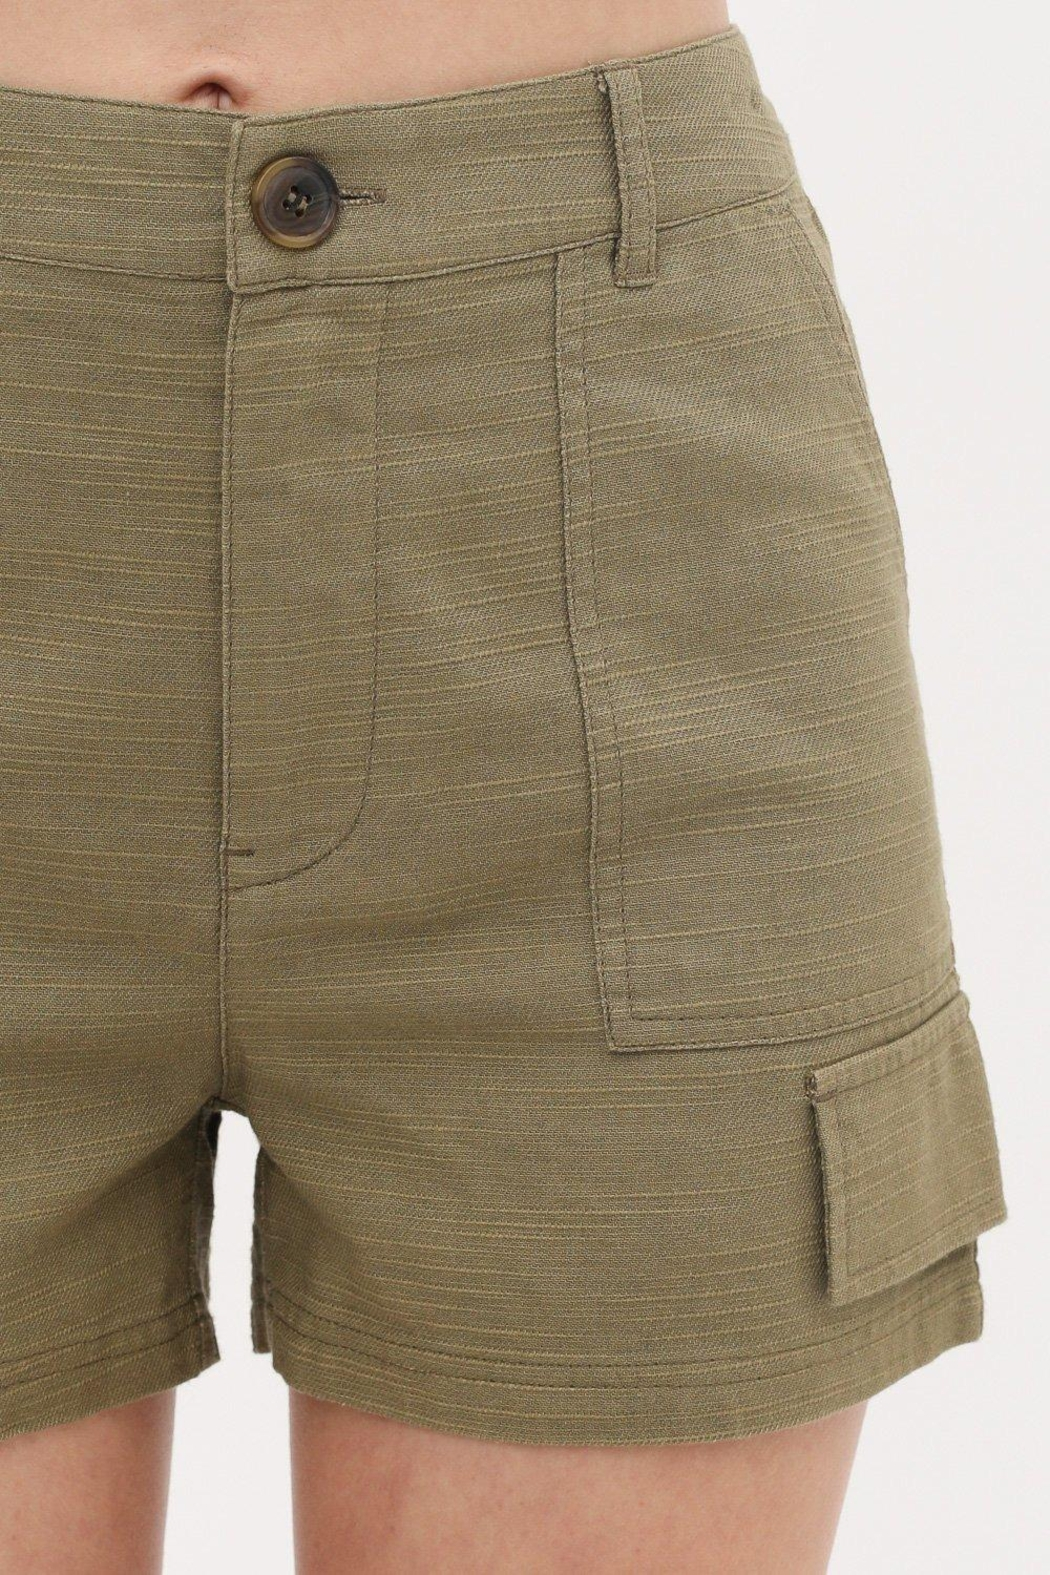 Love Tree Woven Button Front Pocket Detail Short (3 Colors) - Side Cropped Image